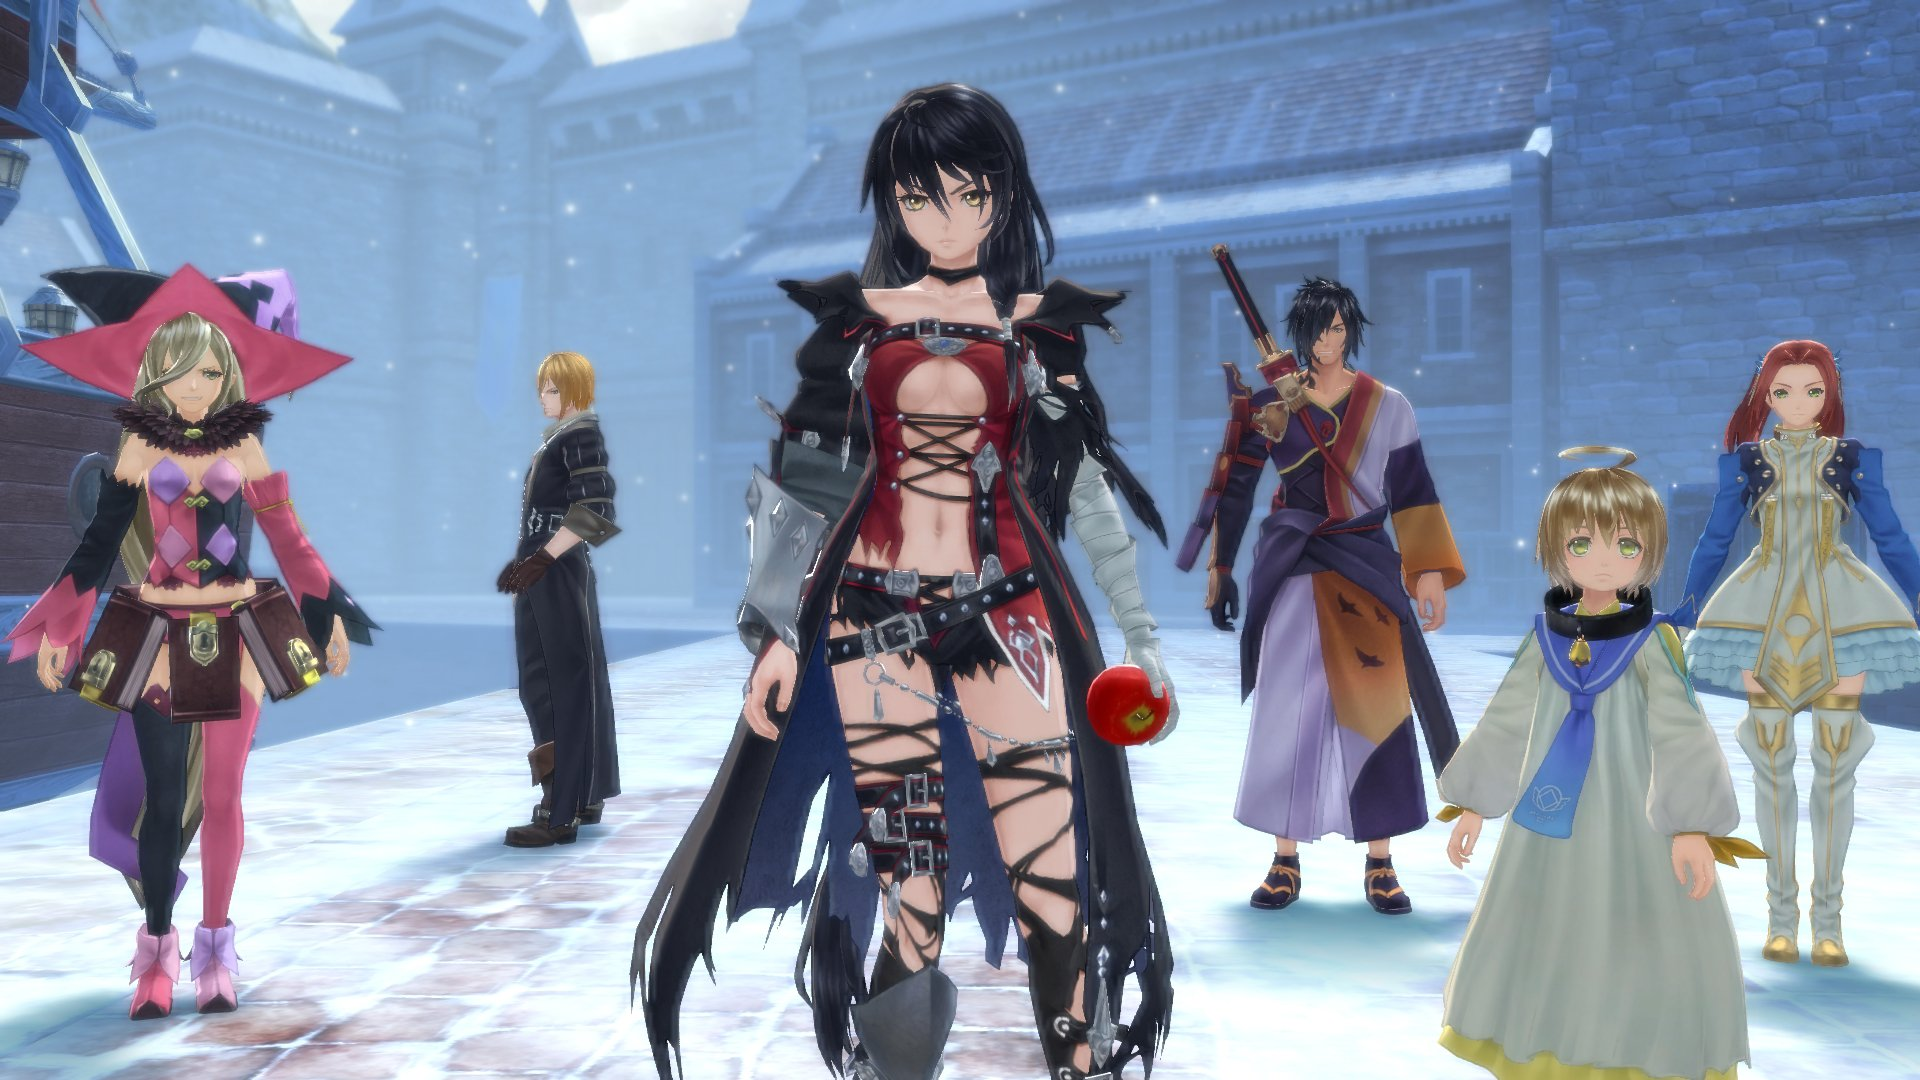 380528-Tales-of-Berseria-screenshot-37